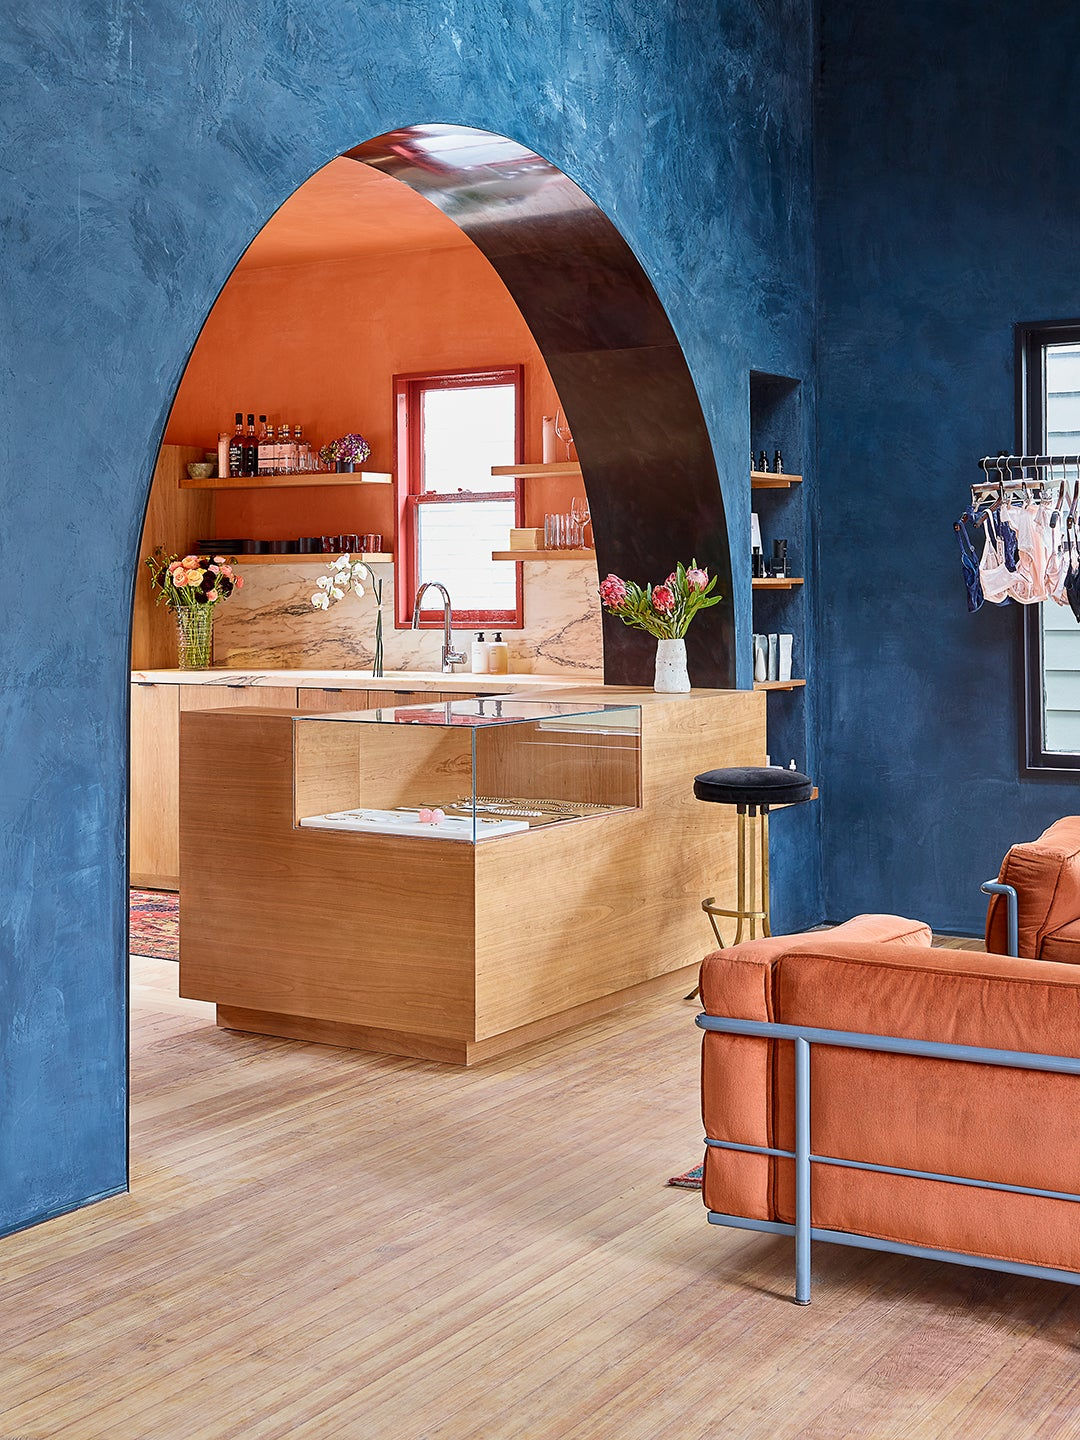 We're Stealing This Fresh Take on Built-Ins From Austin's New Sexual Wellness Shop